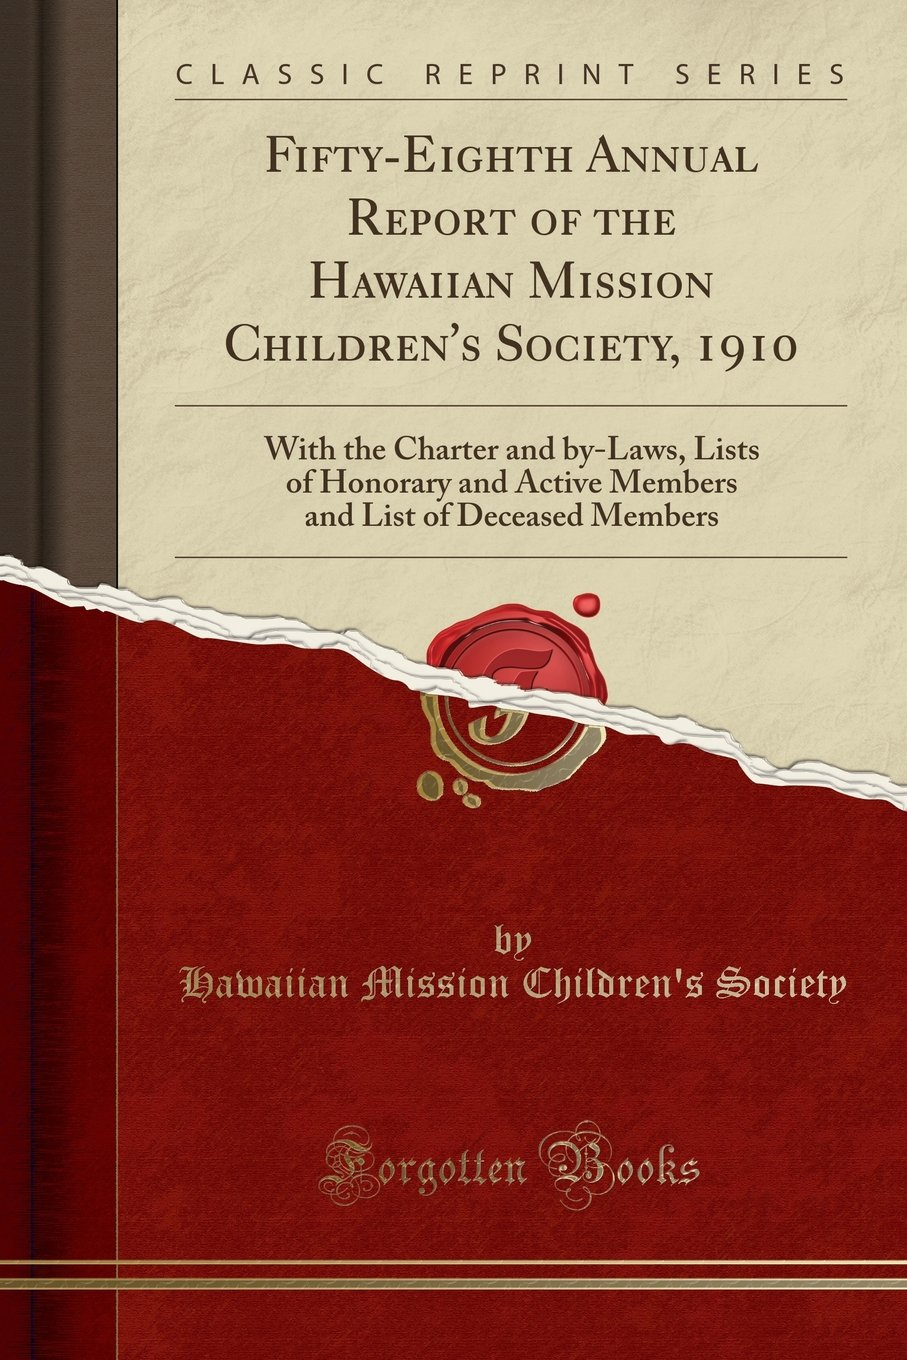 Download Fifty-Eighth Annual Report of the Hawaiian Mission Children's Society, 1910: With the Charter and by-Laws, Lists of Honorary and Active Members and List of Deceased Members (Classic Reprint) ebook